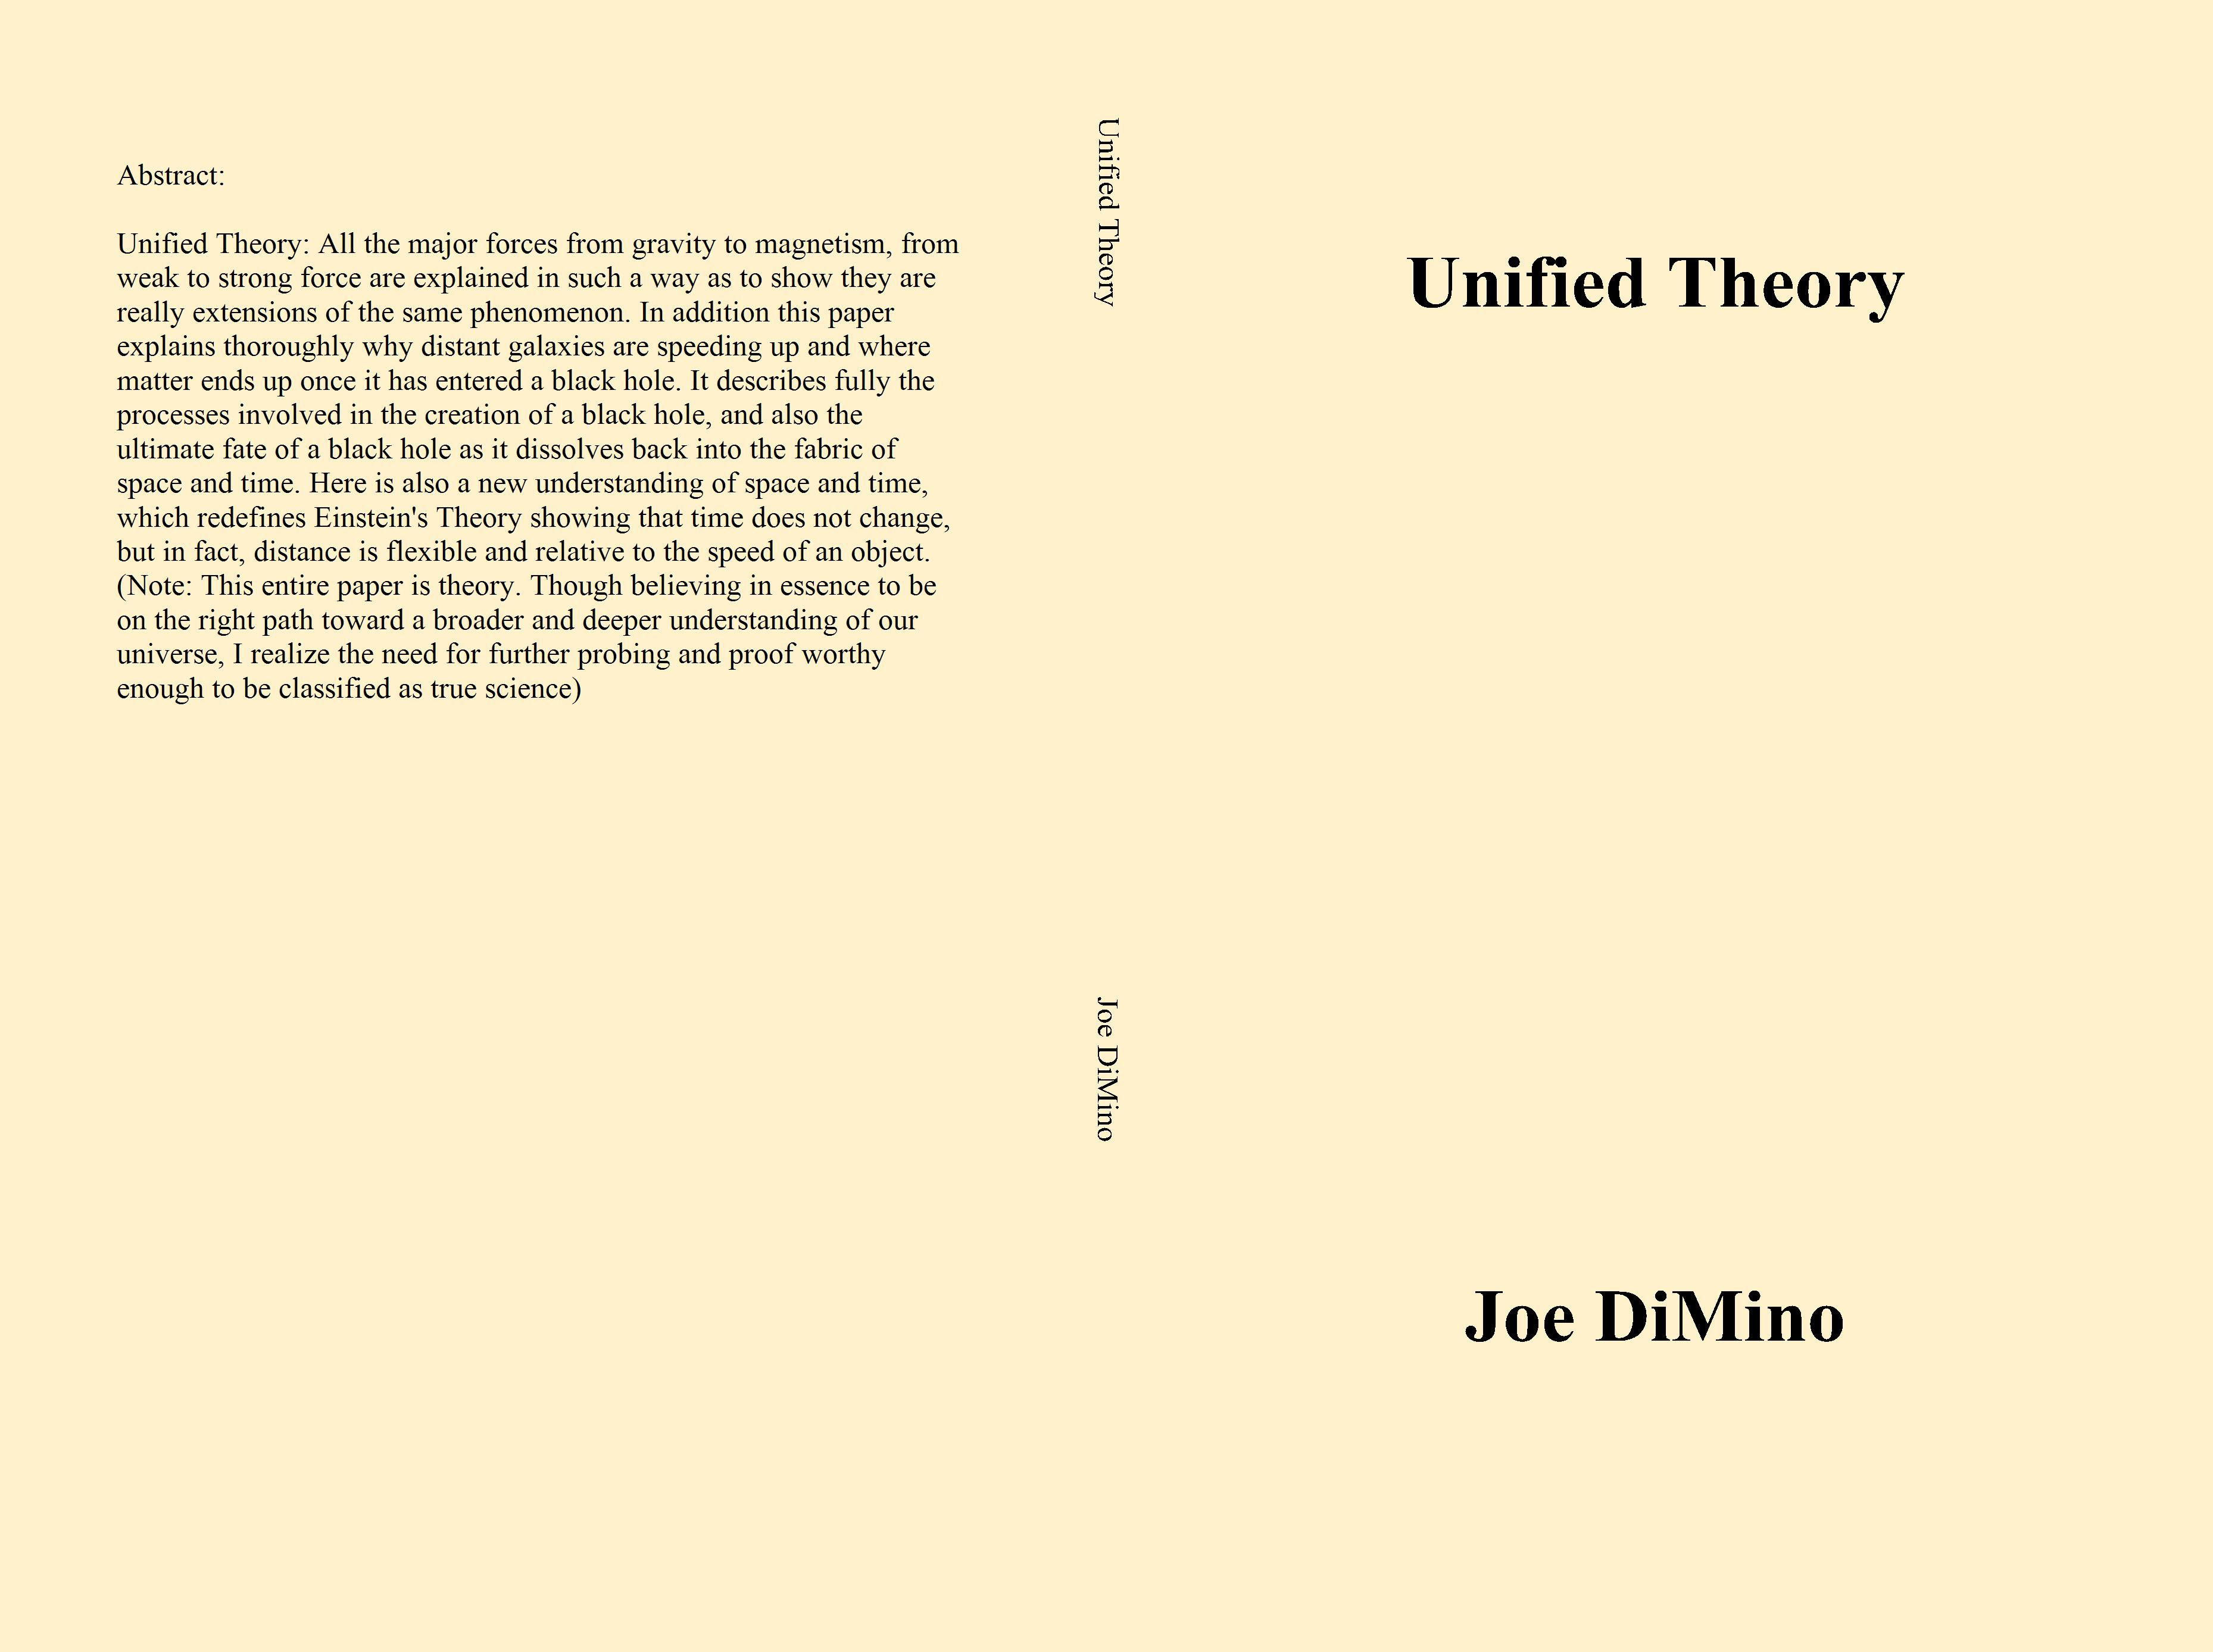 Unified Theory cover image